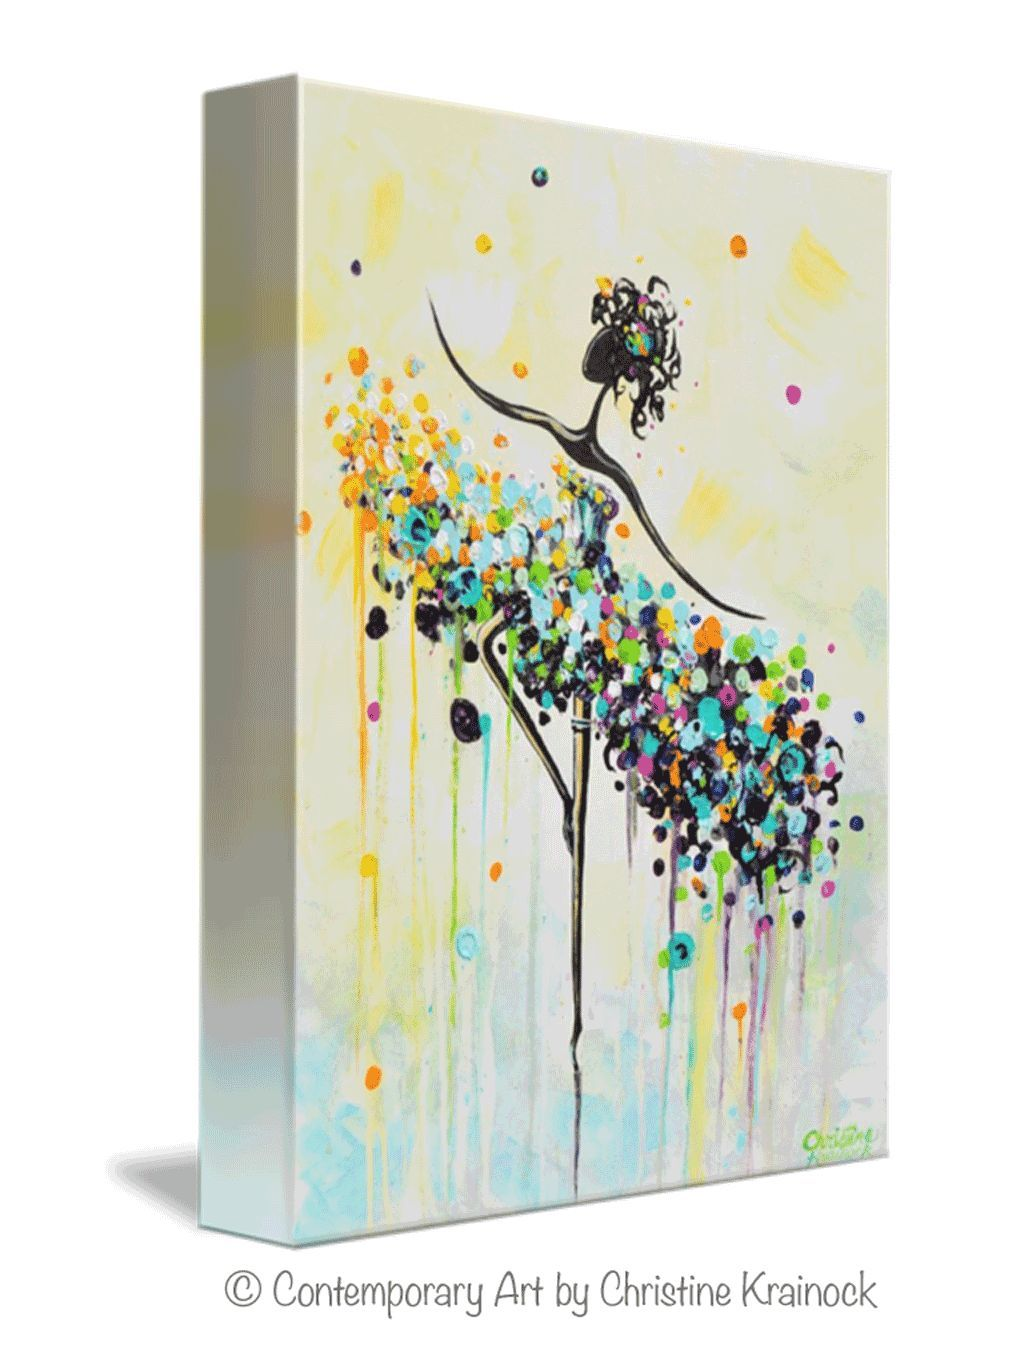 Modern giclee print on gallery canvas dance figurative wall art palette knife paintings colorful aqua blue yellow purple orange green pink also abstract painting dancer prints rh pinterest